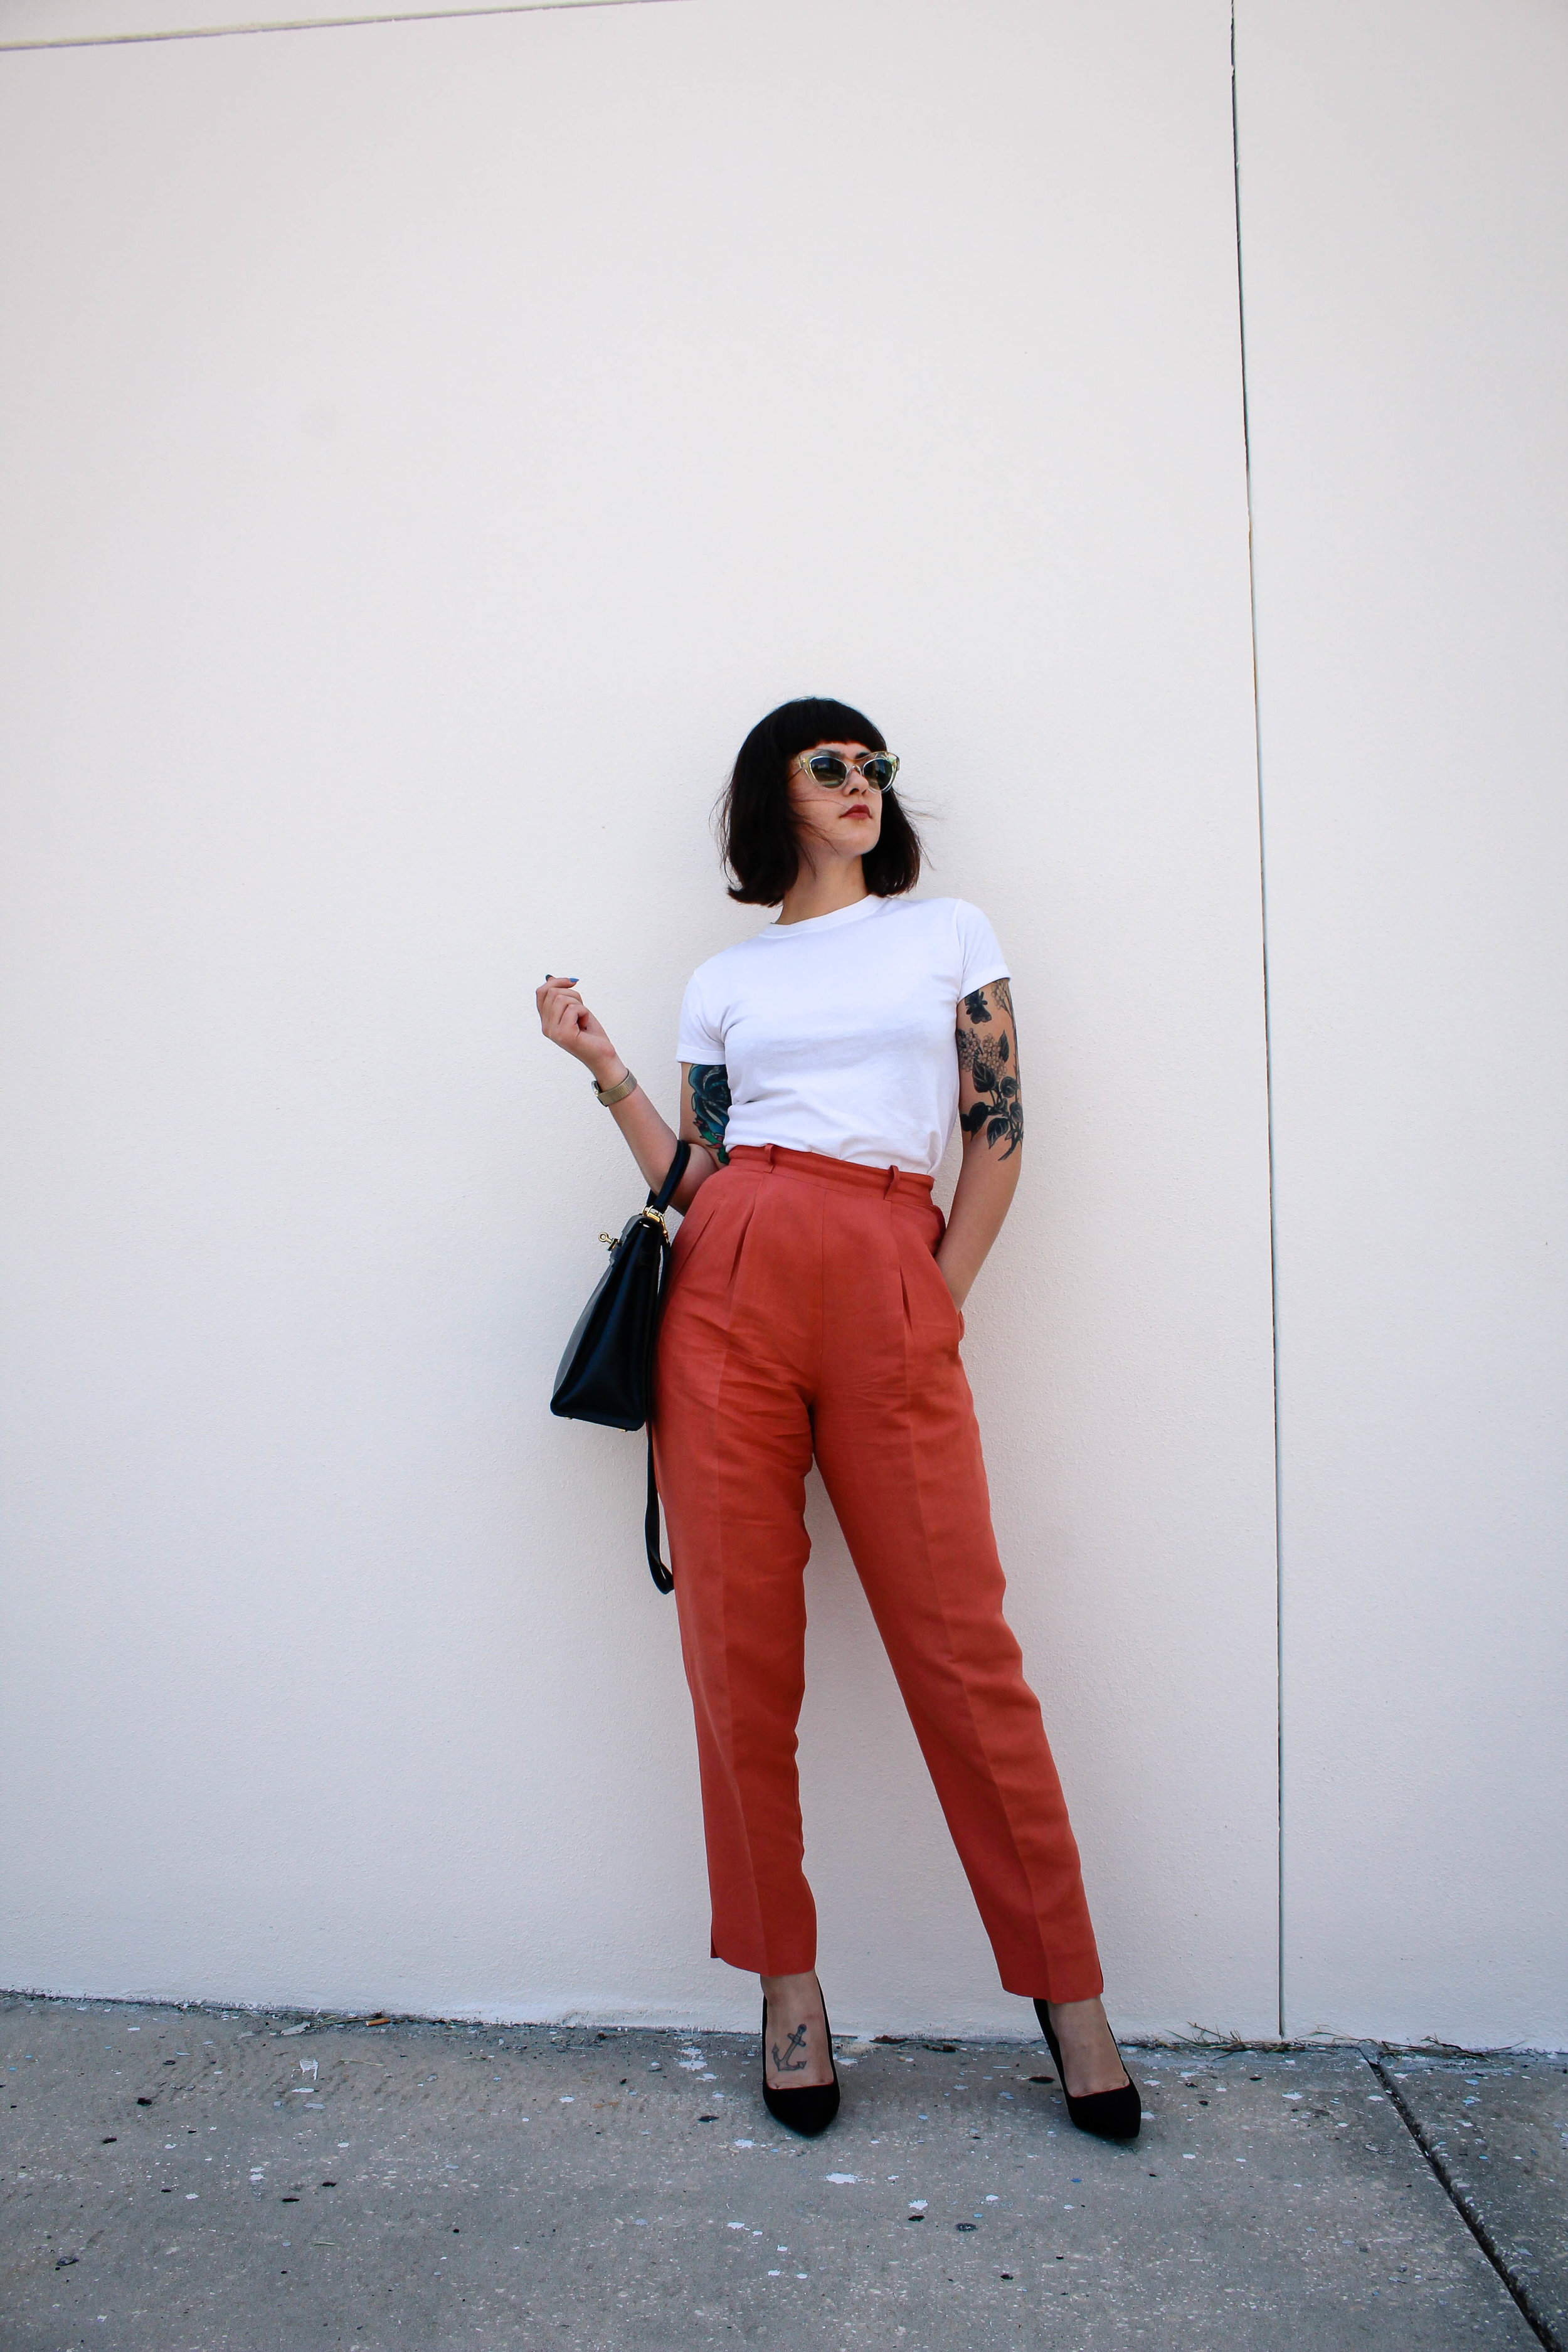 howtostyletrousers-7.jpg